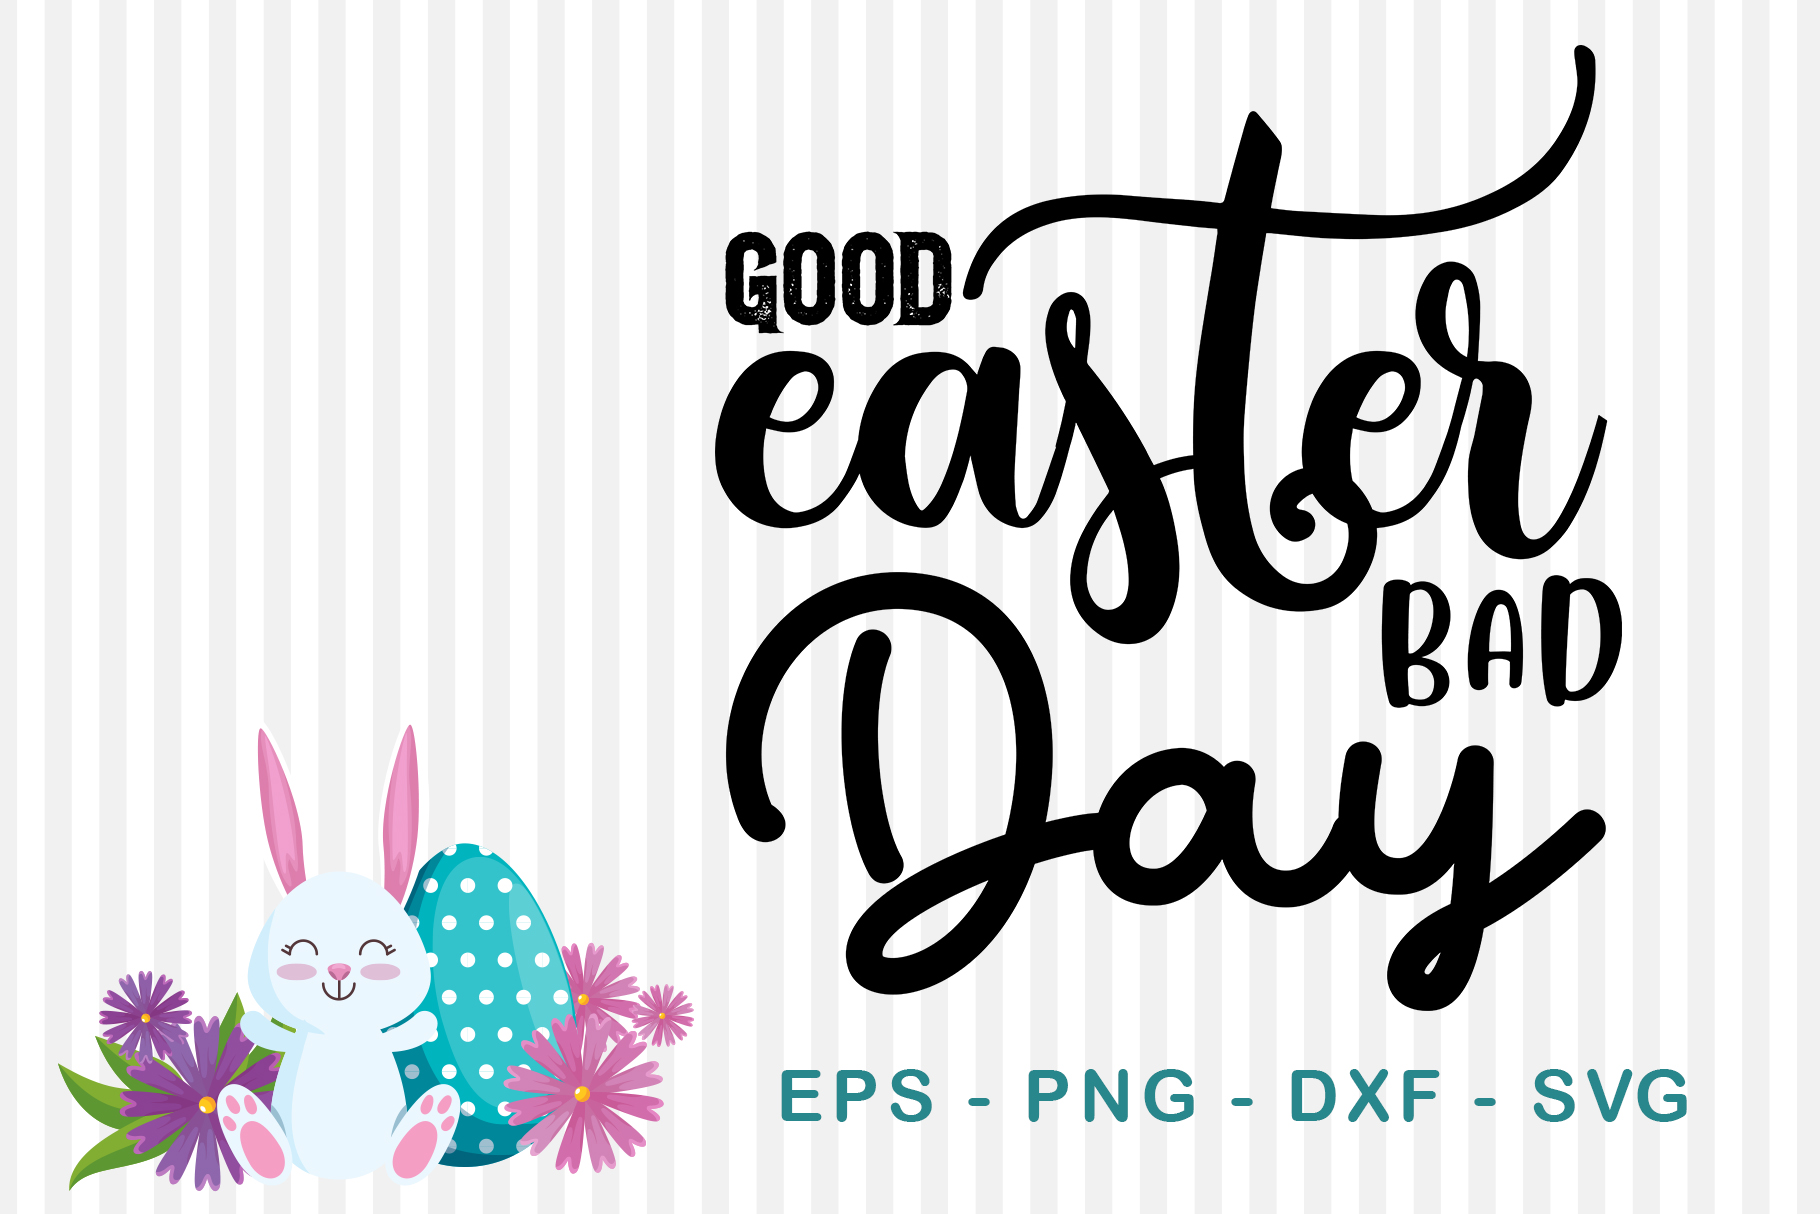 Download Free Good Easter Bad Day Graphic By Sharon Dmstudio Creative for Cricut Explore, Silhouette and other cutting machines.